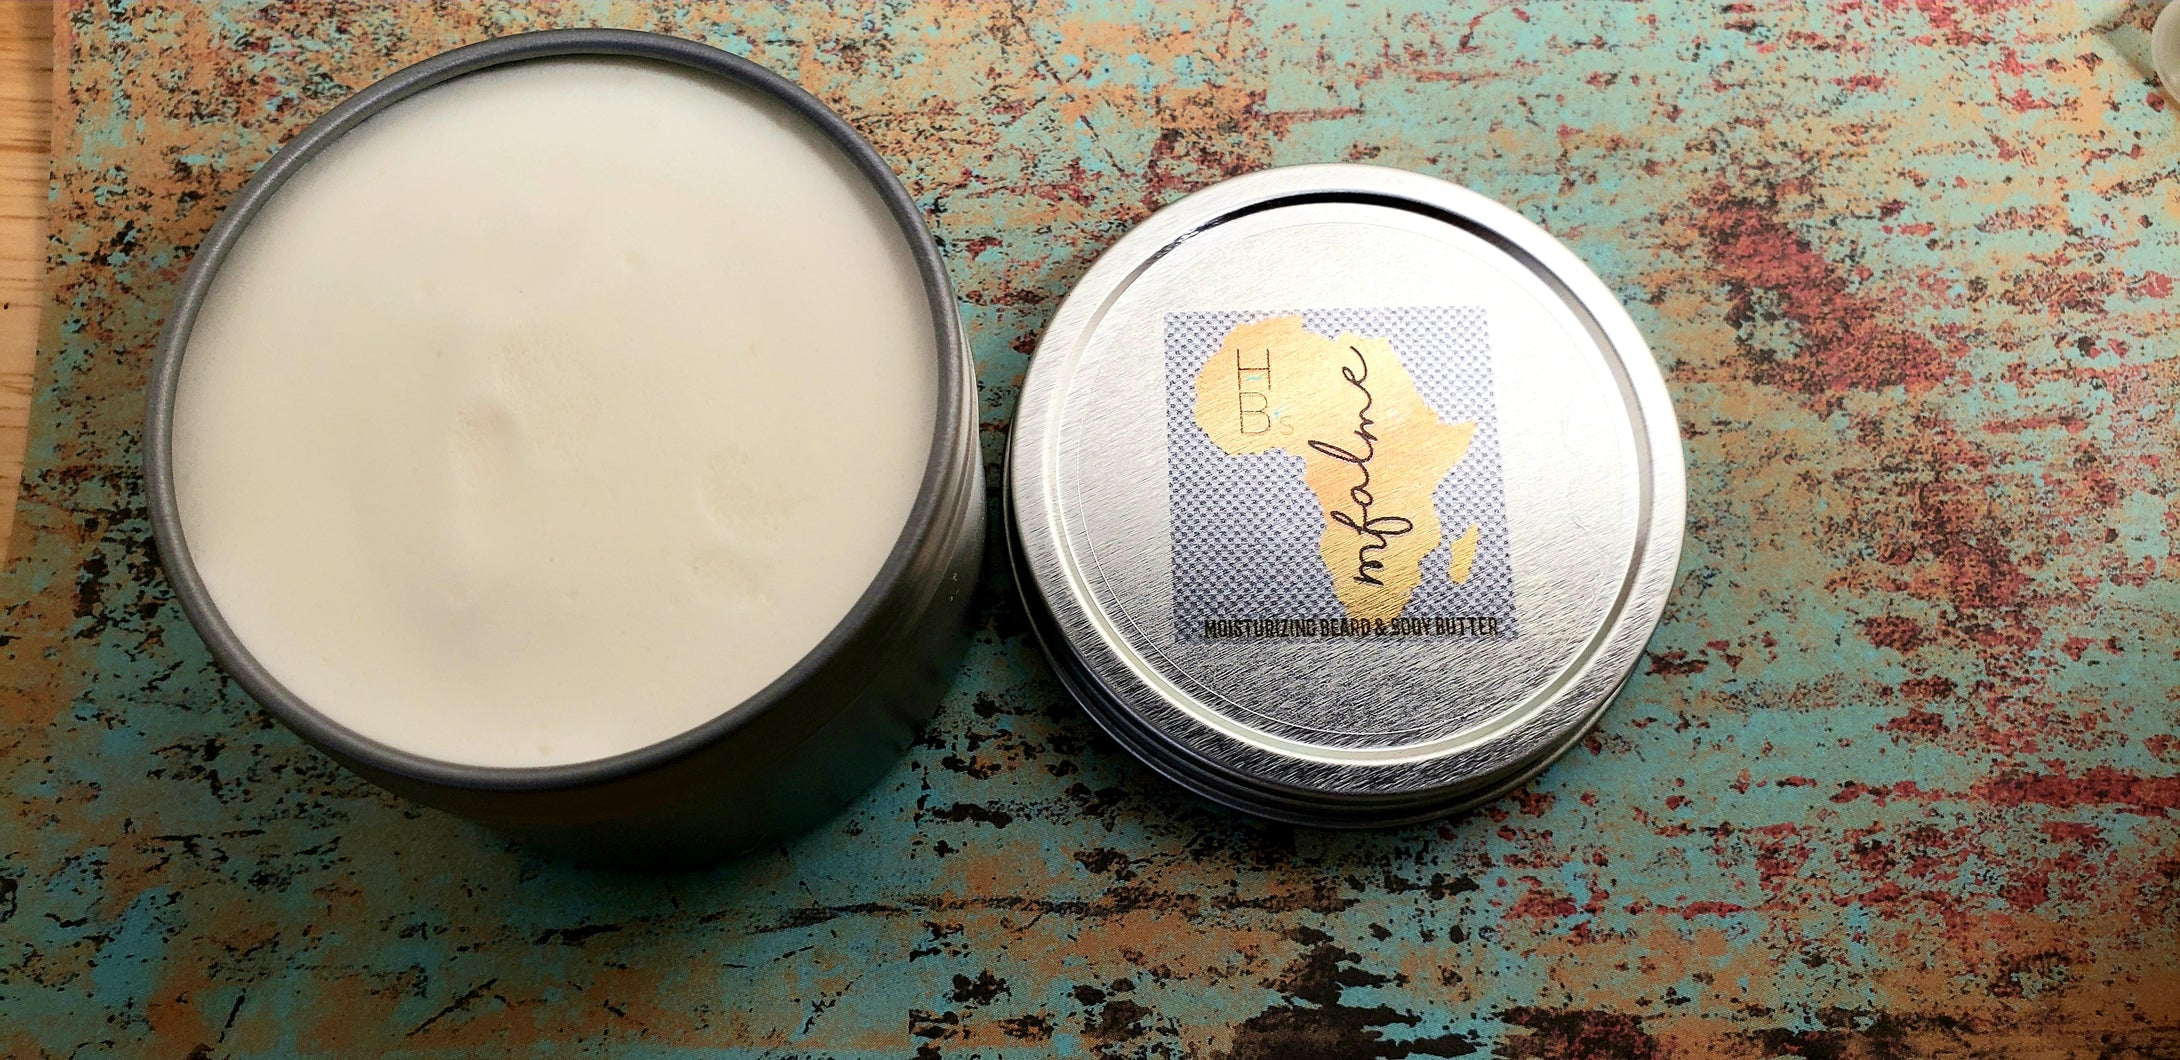 Mfalme Northern Ghana Shea Butter Silk